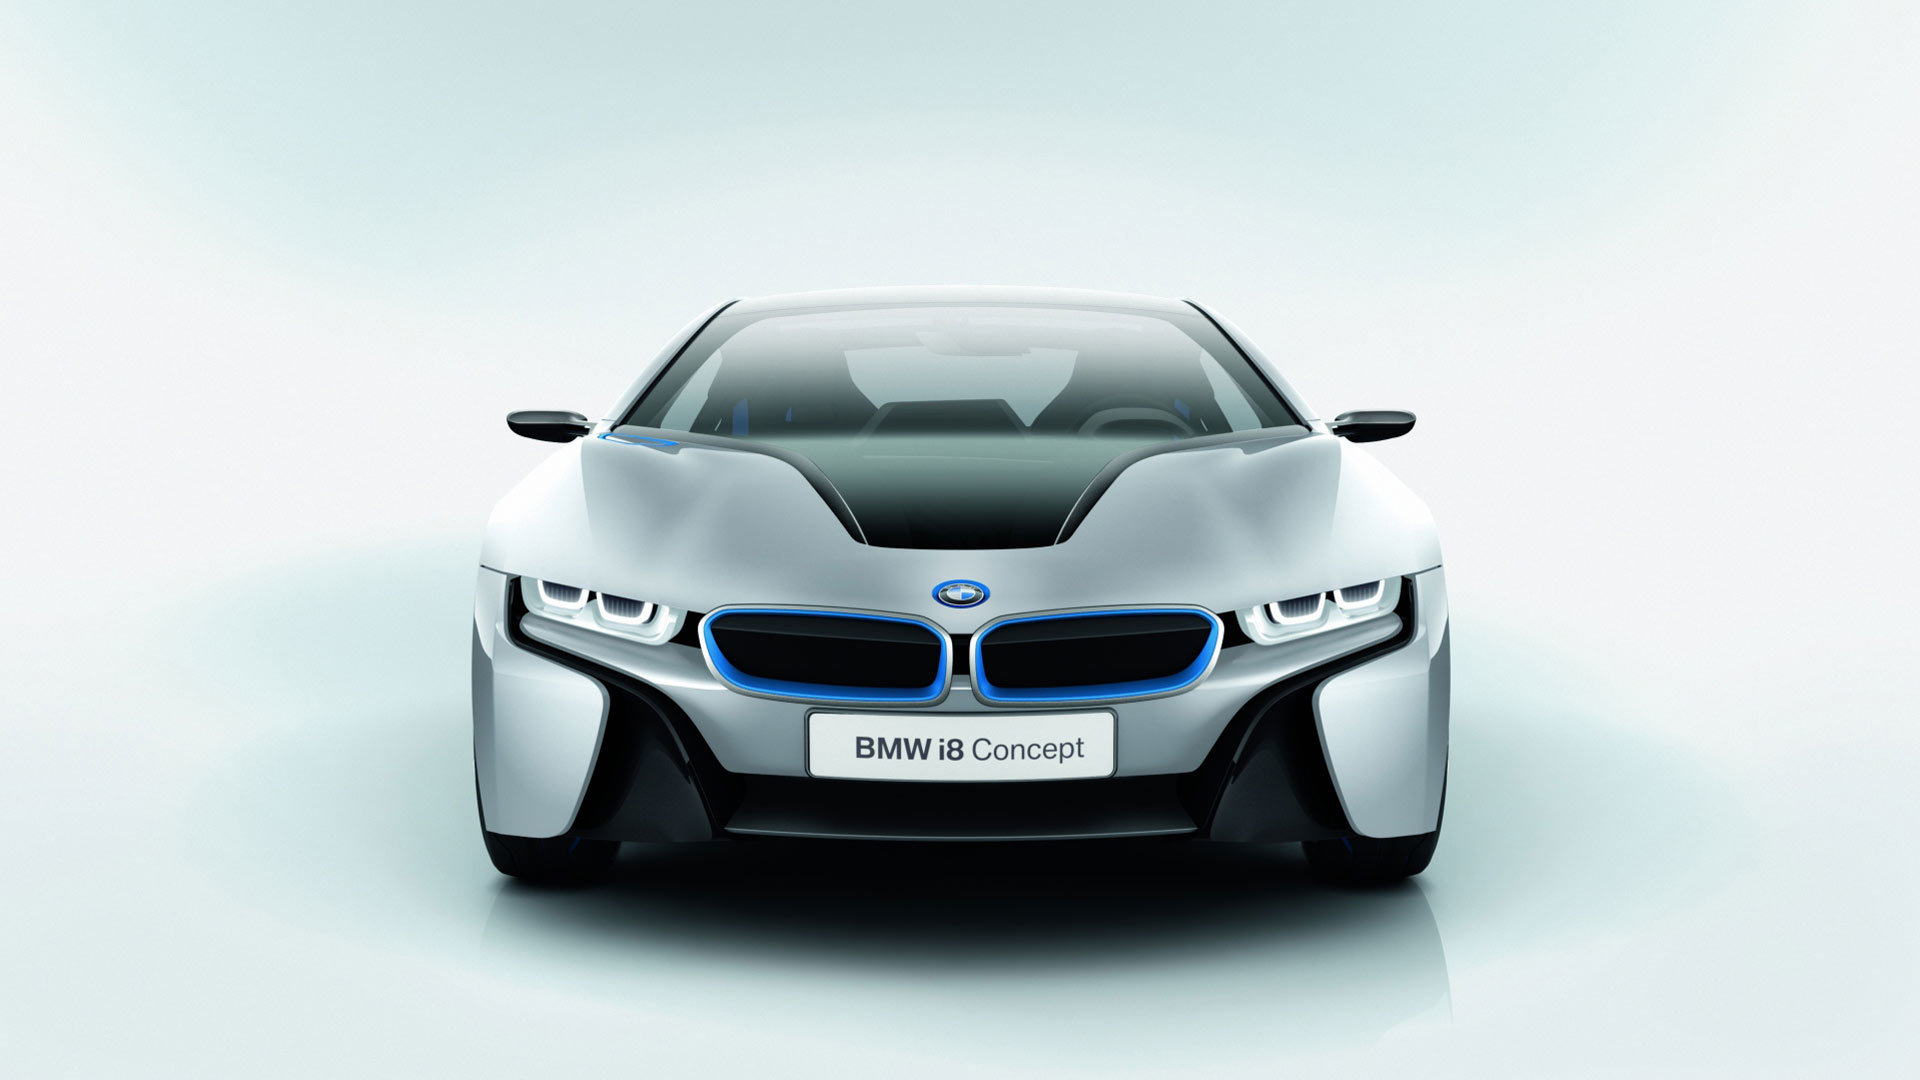 Free Download Bmw I8 Background Id 126960 Full Hd 1920x1080 For Computer